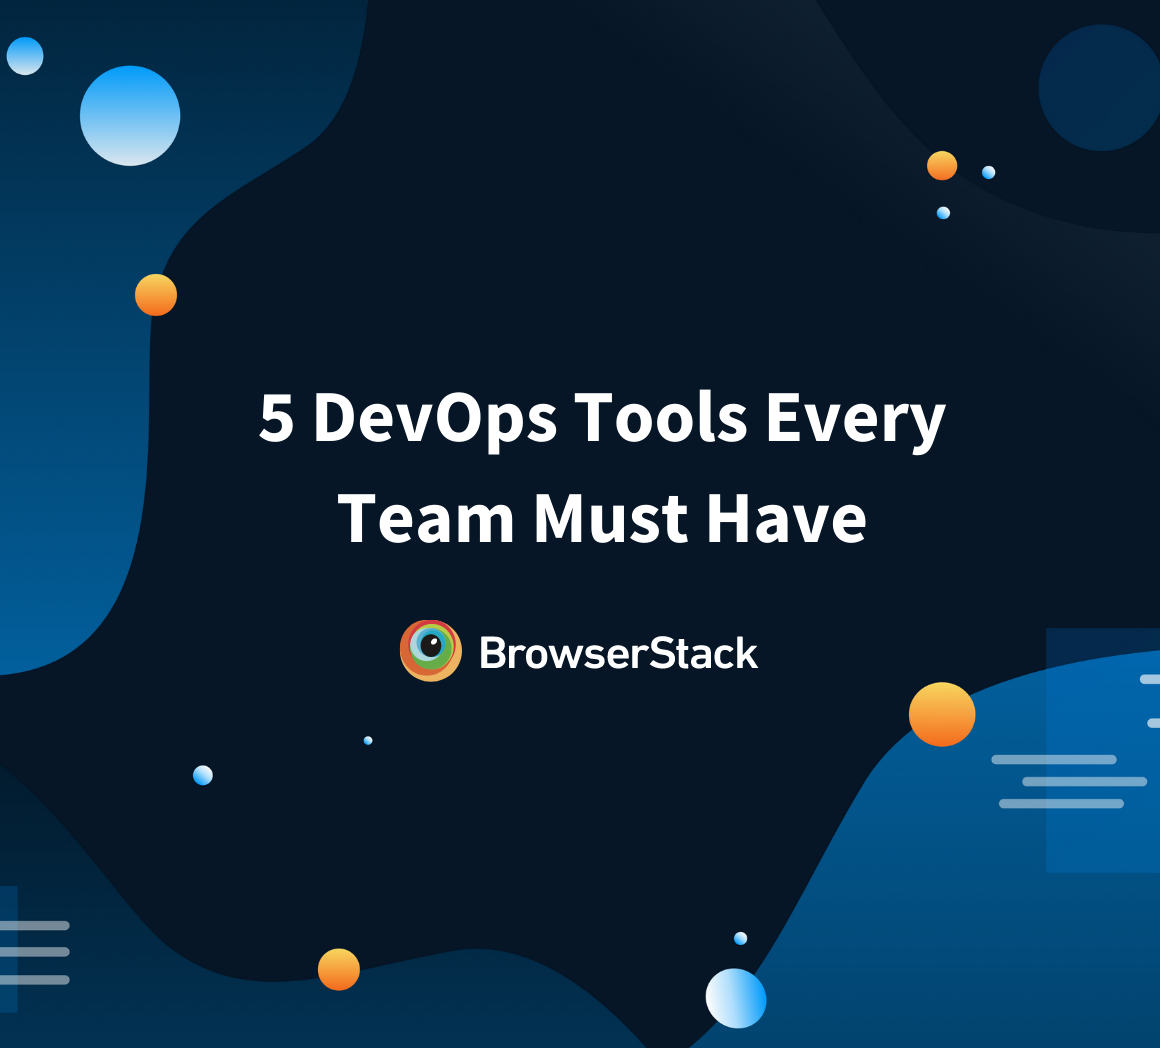 Essential Tools for every DevOps Team